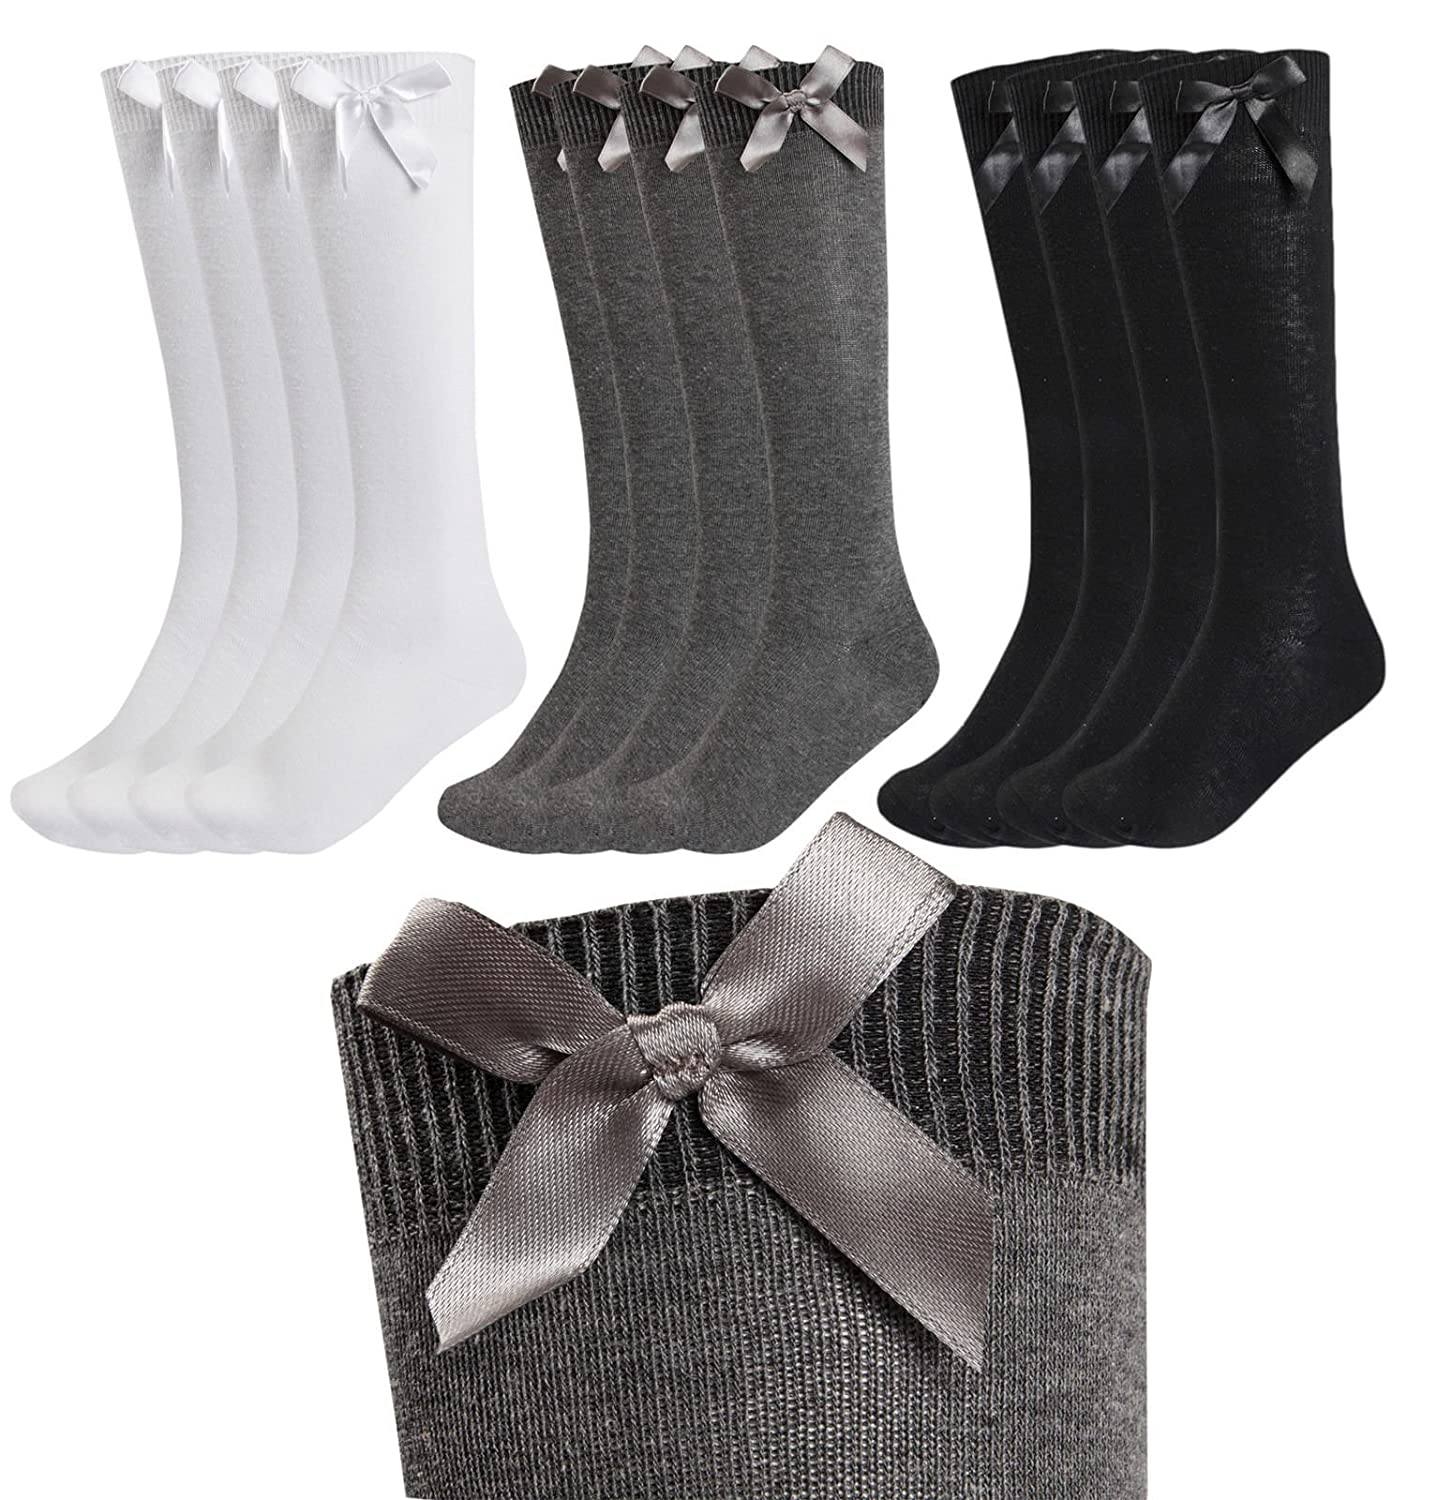 3 PAIRS GIRLS FASHION COTTON KNEE HIGH CHILDREN KIDS SCHOOL SOCKS WITH BOW SIZE